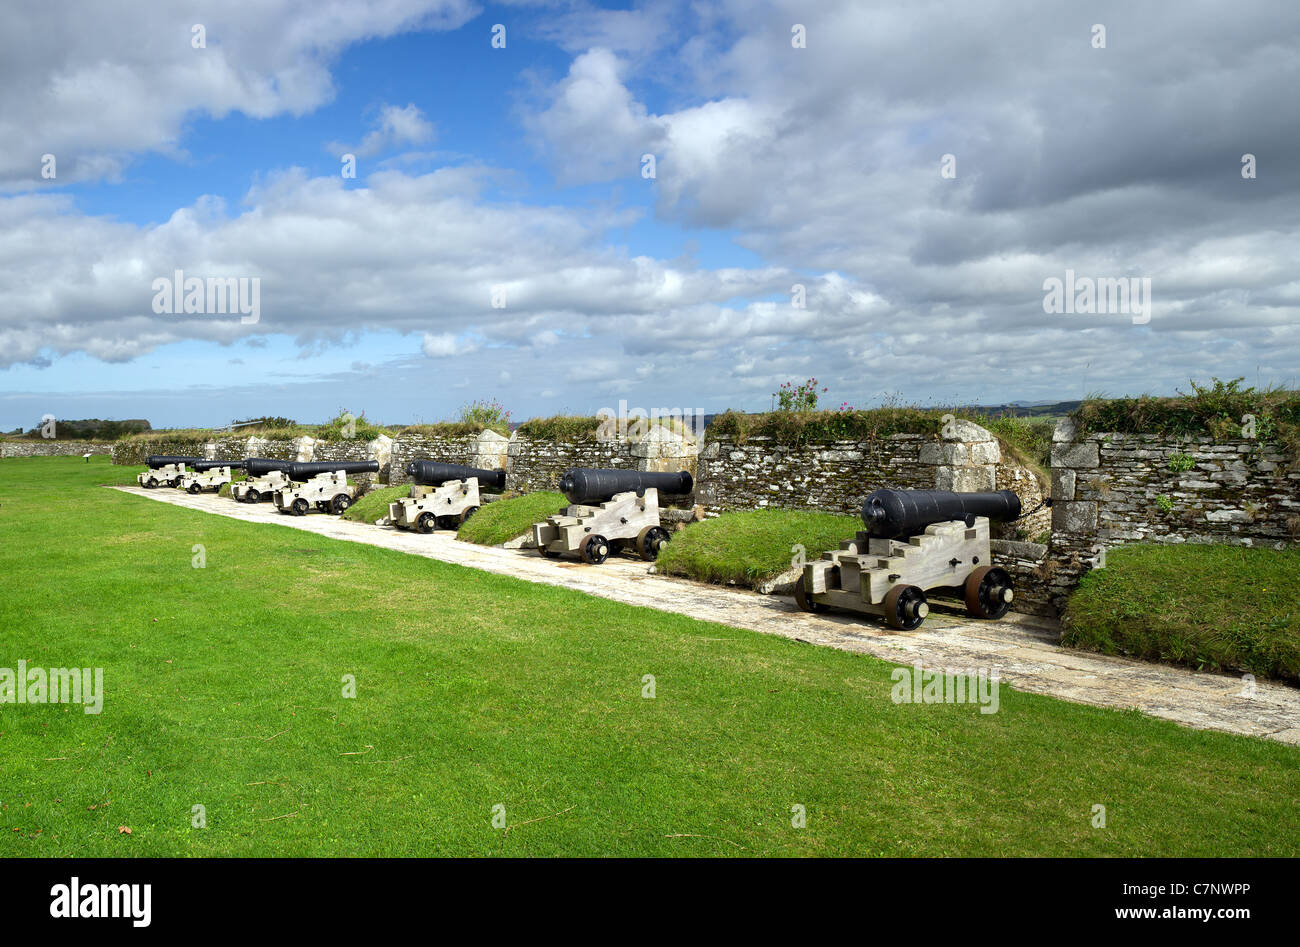 Examples of 18 century and early 19 century cannon of the Nine Gun Battery at Pendennis Castle in Cornwall - Stock Image